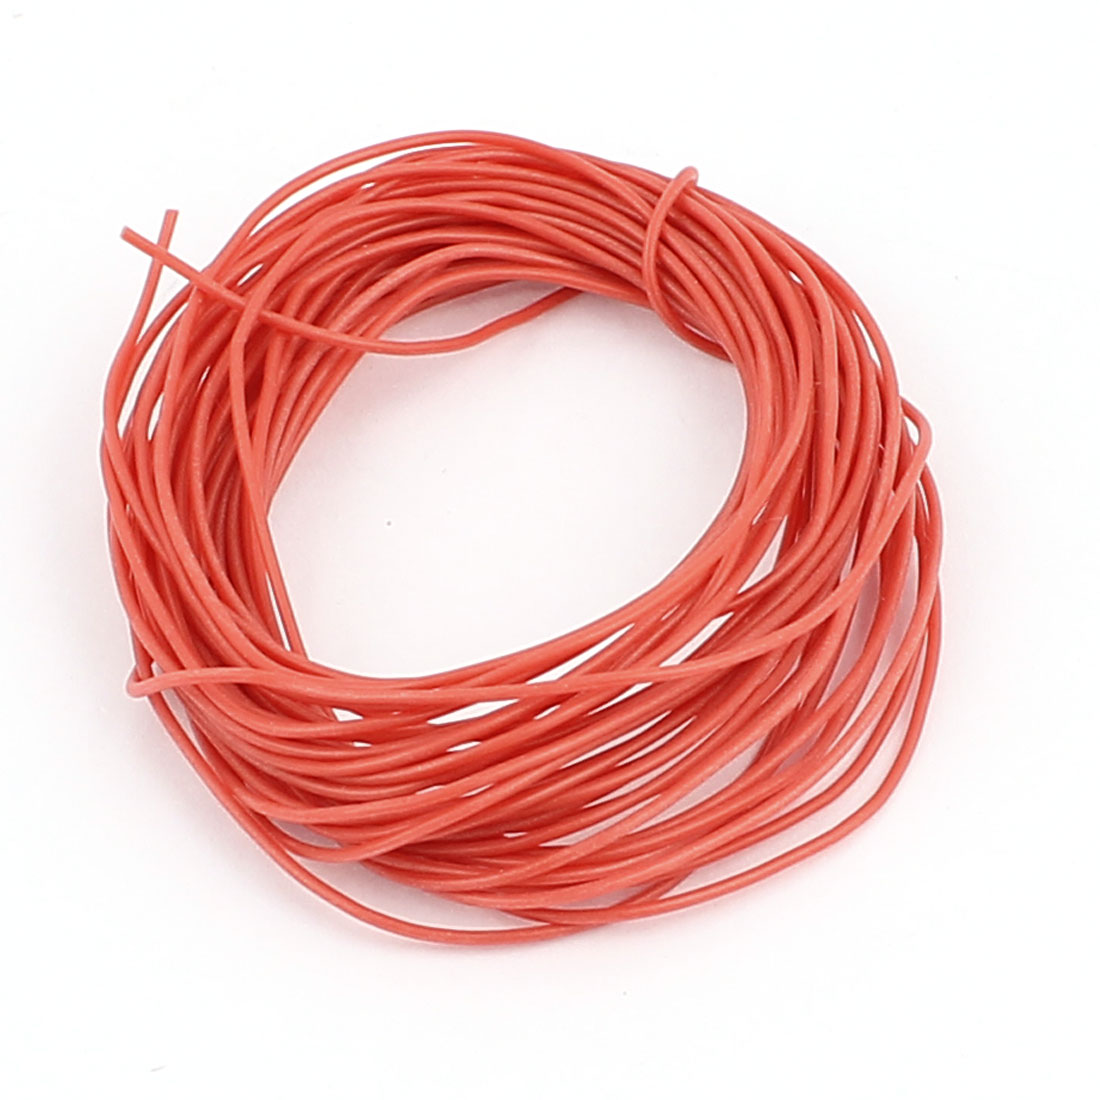 5M 30AWG Electric Copper Core Flexible Silicone Wire Cable Red